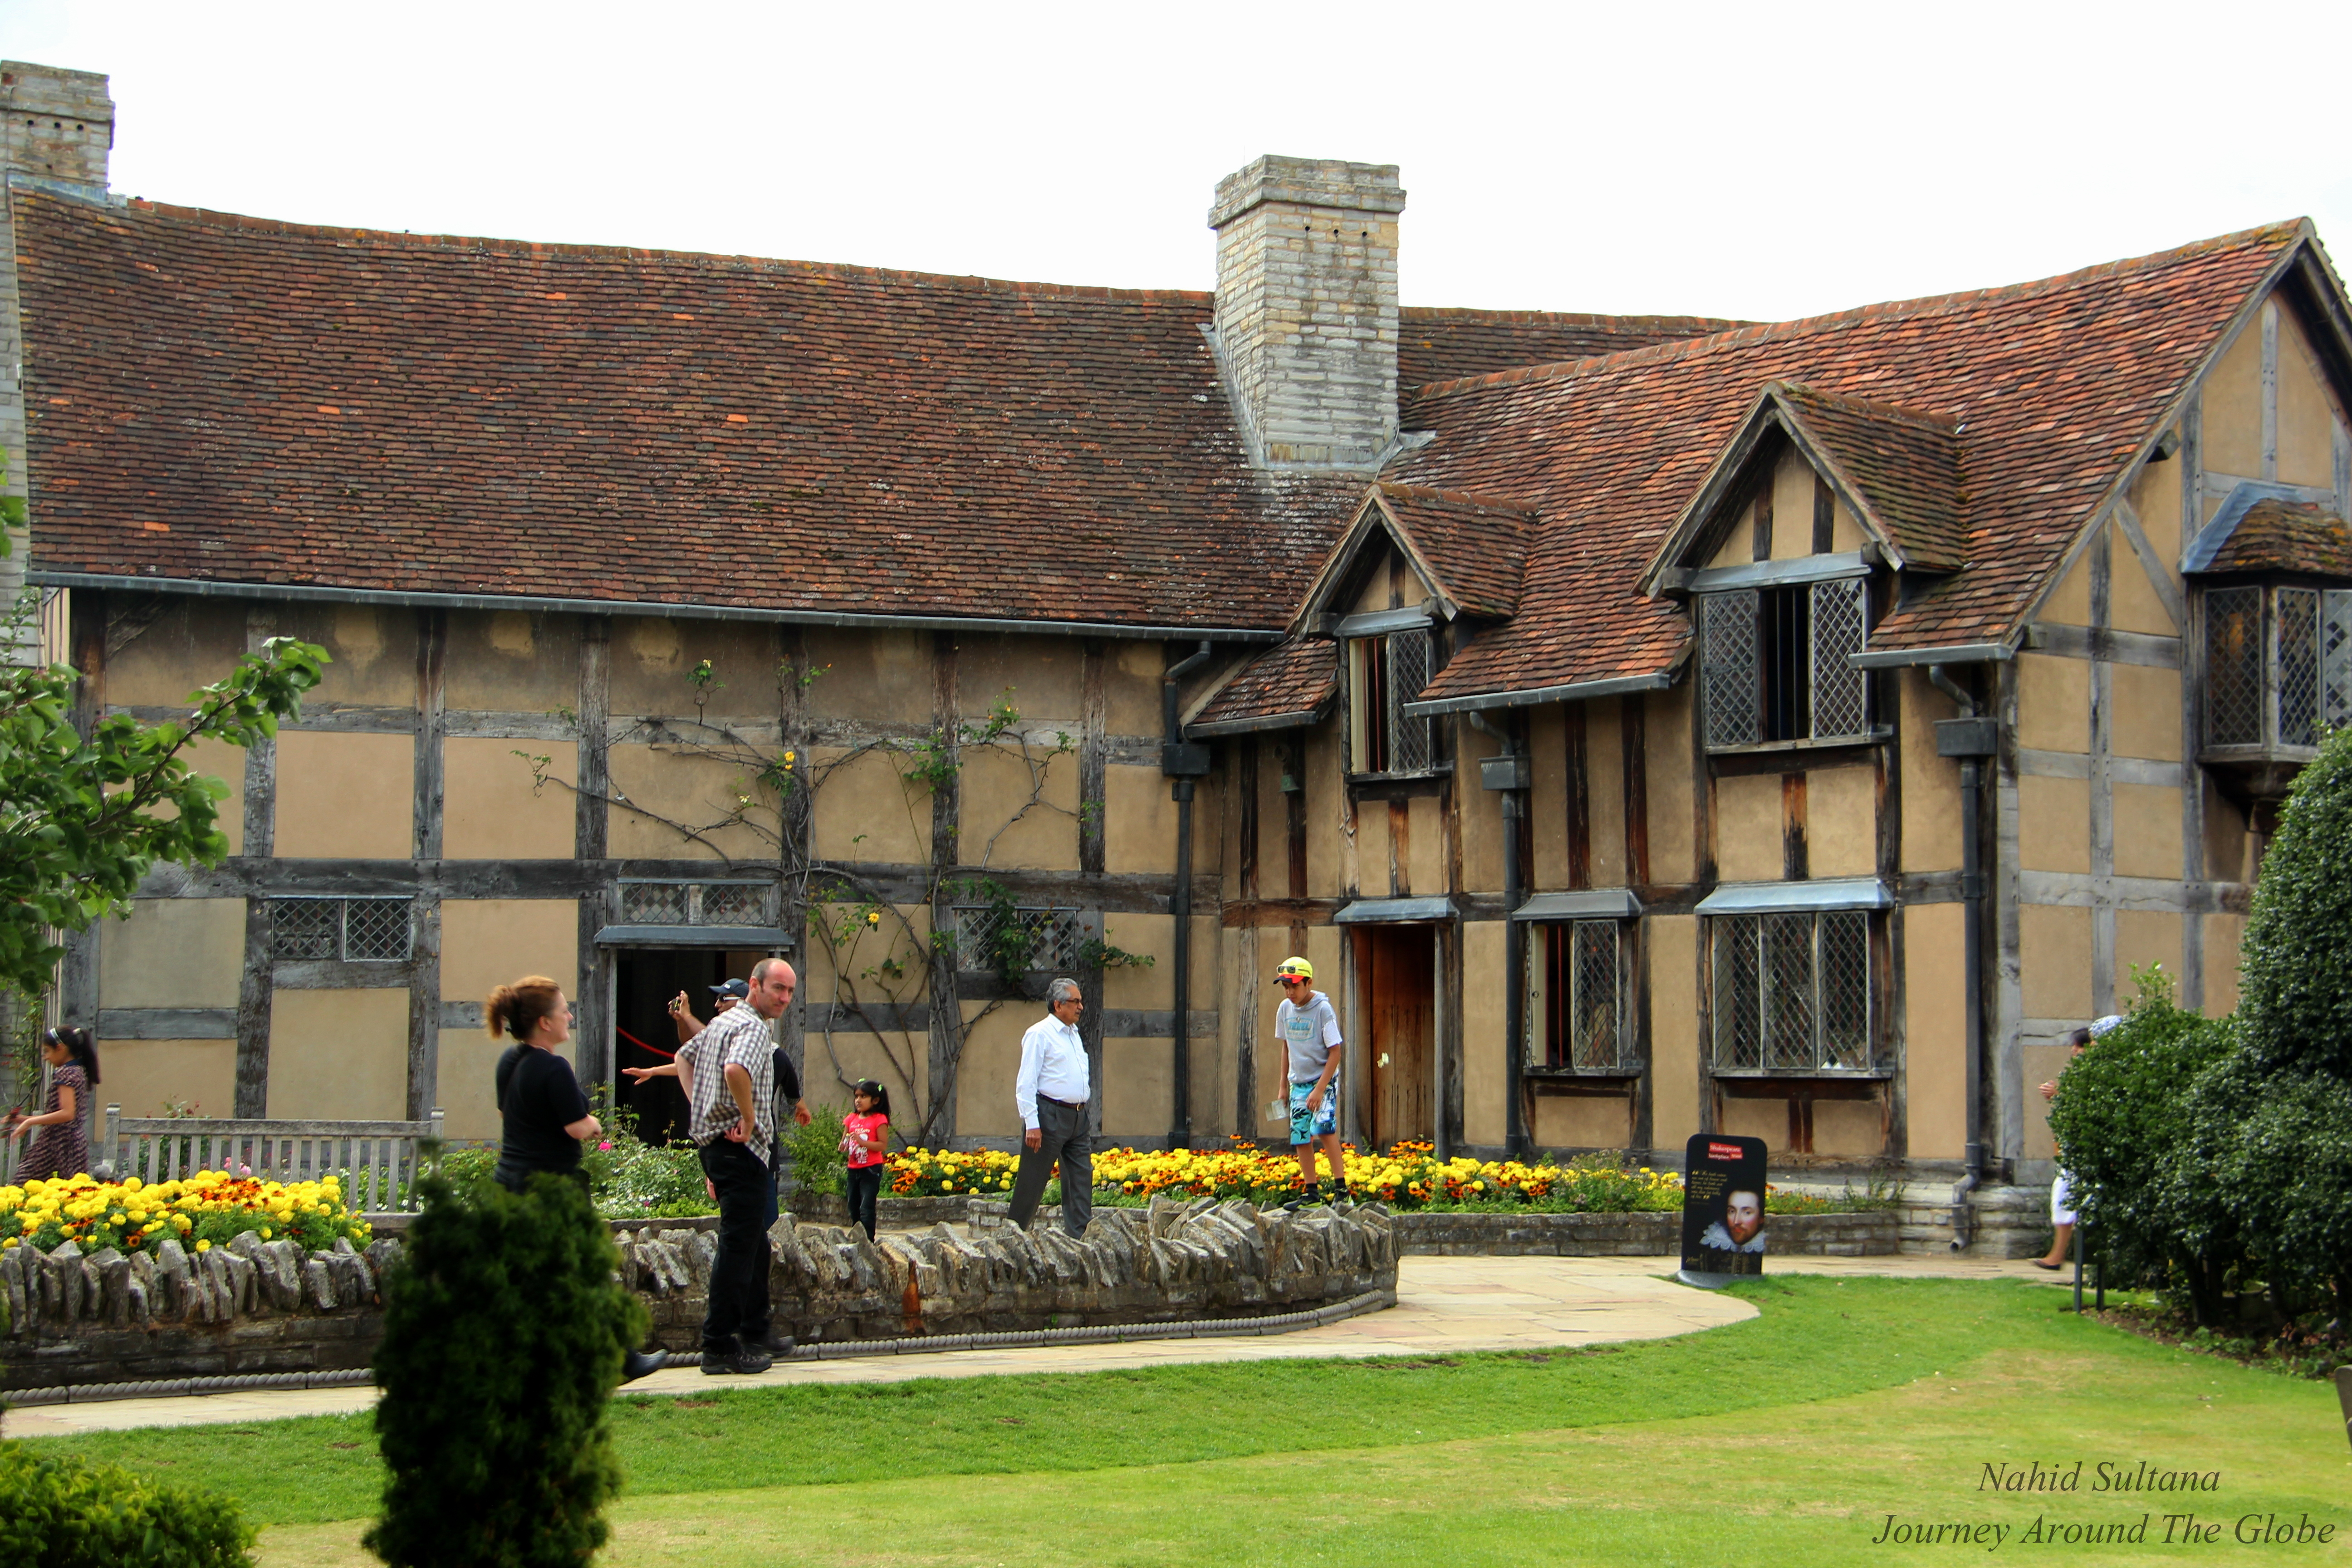 stratford upon avon girls Great savings on hotels in stratford-upon-avon, united kingdom online good availability and great rates read hotel reviews and choose the best hotel deal for your stay.